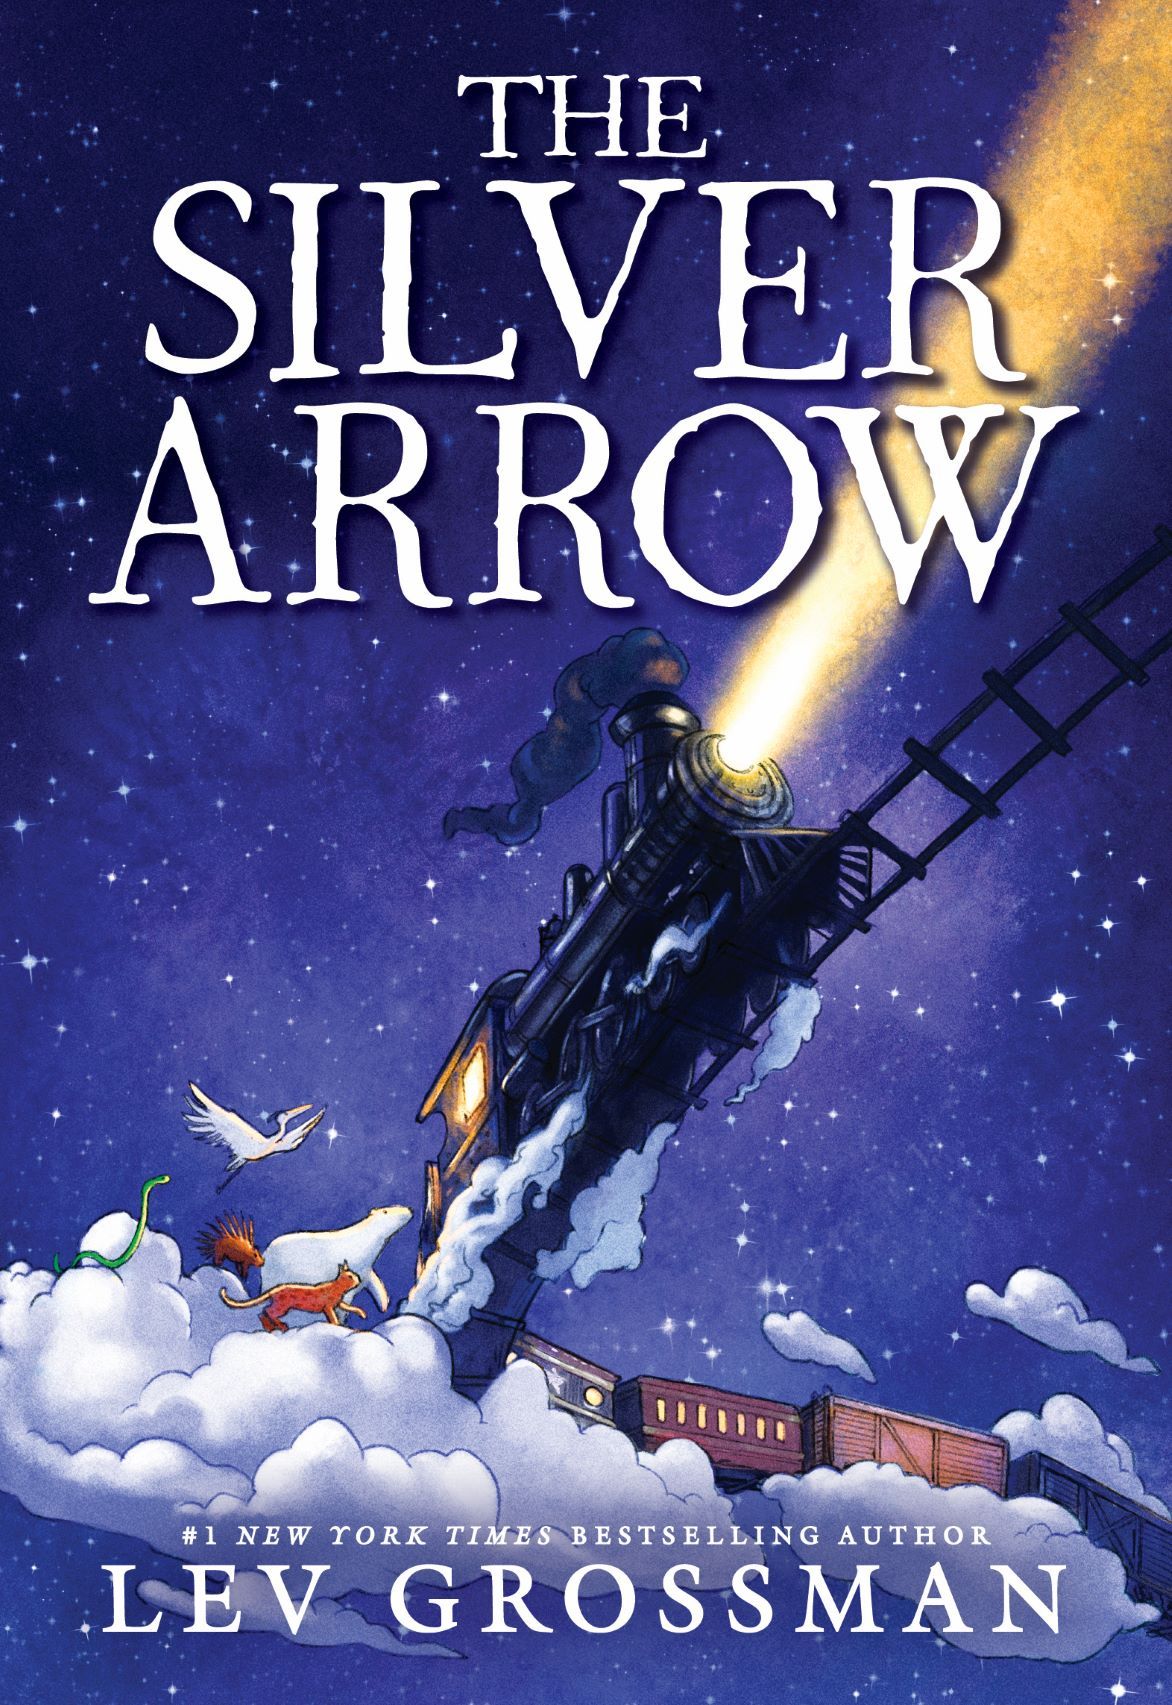 Virtual event with Lev Grossman/The Silver Arrow